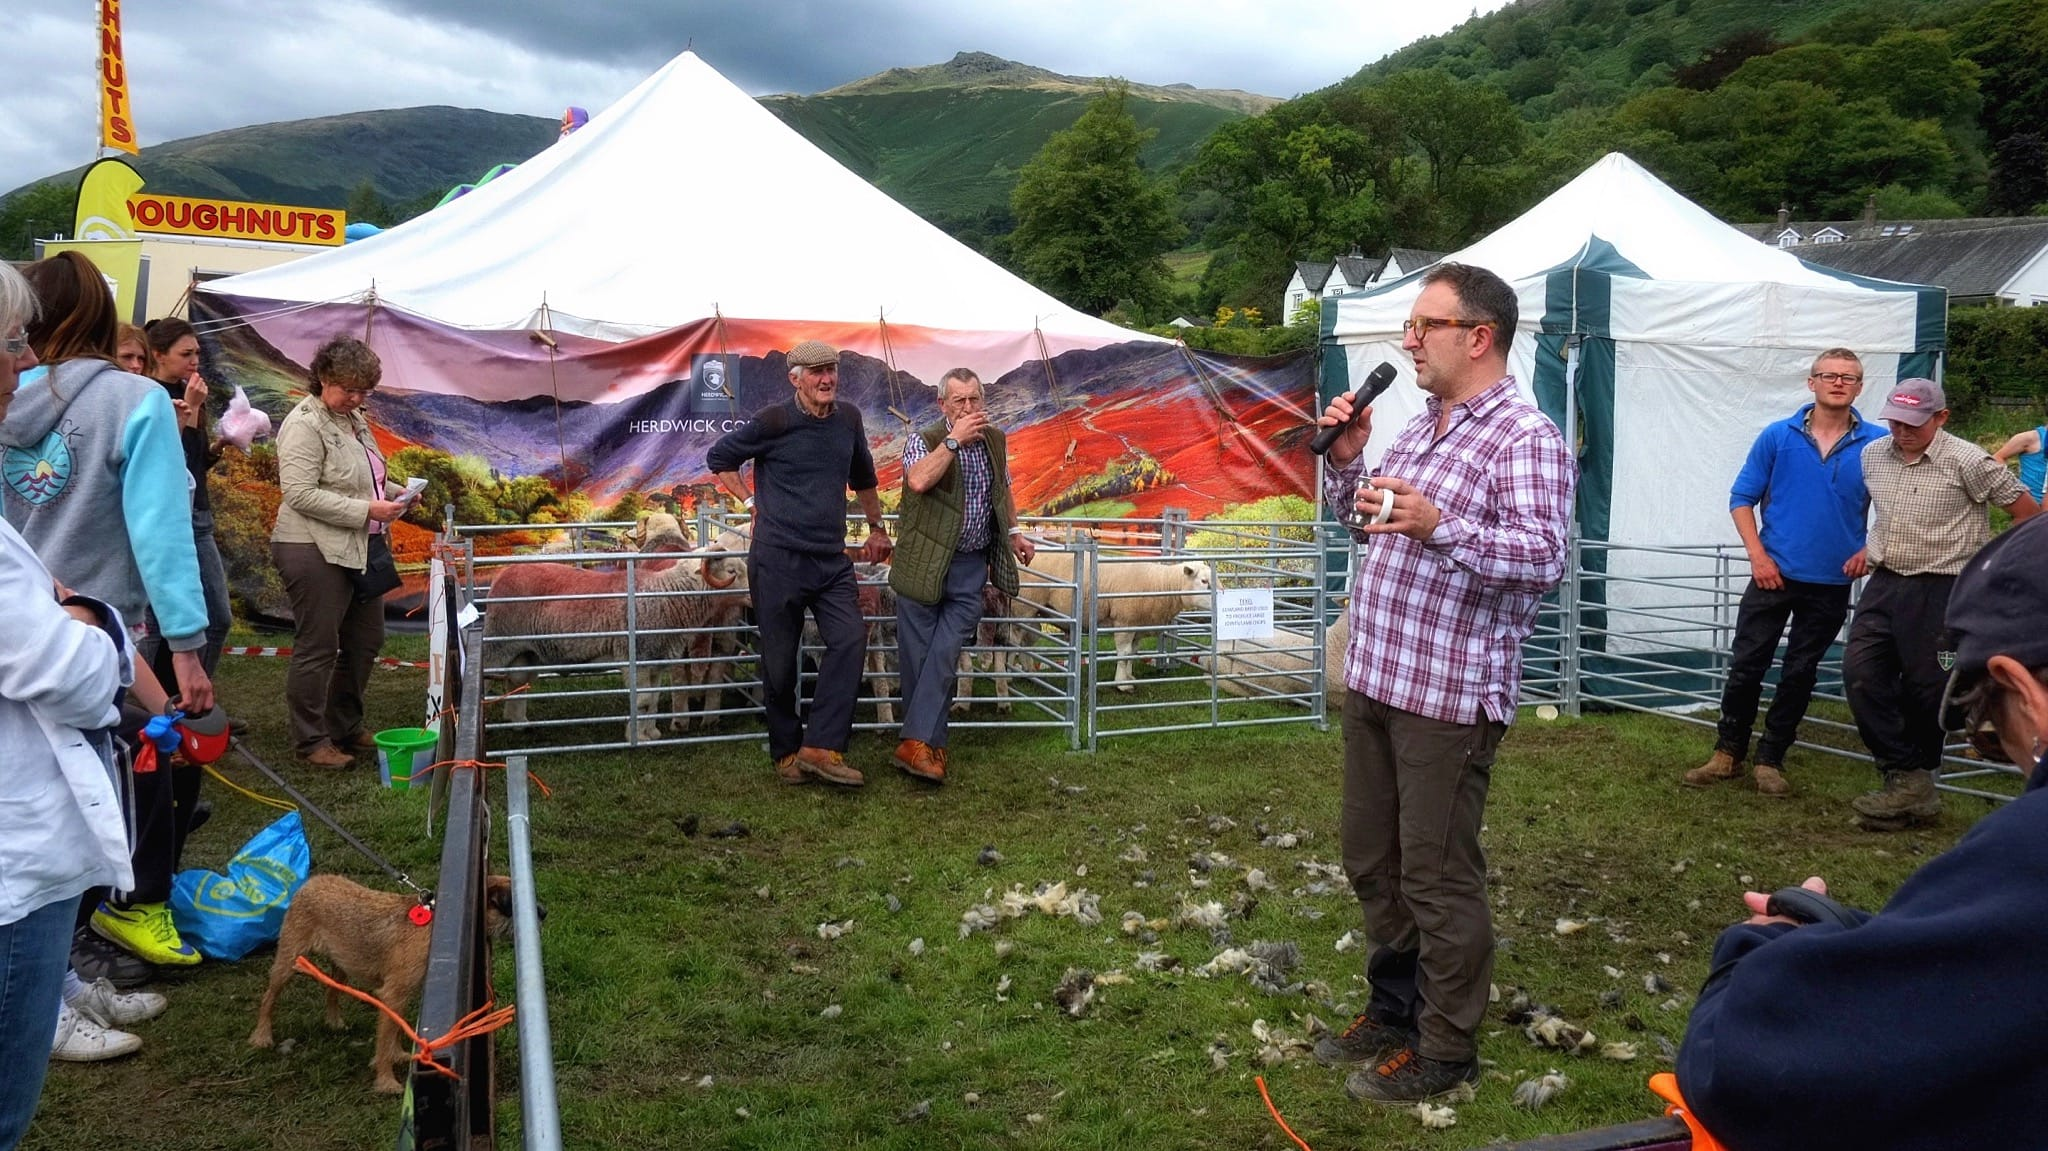 Spencer Hannah of the Herdy Company gives a talk at the Herdwick Sheep Breeders Association area to a crowd